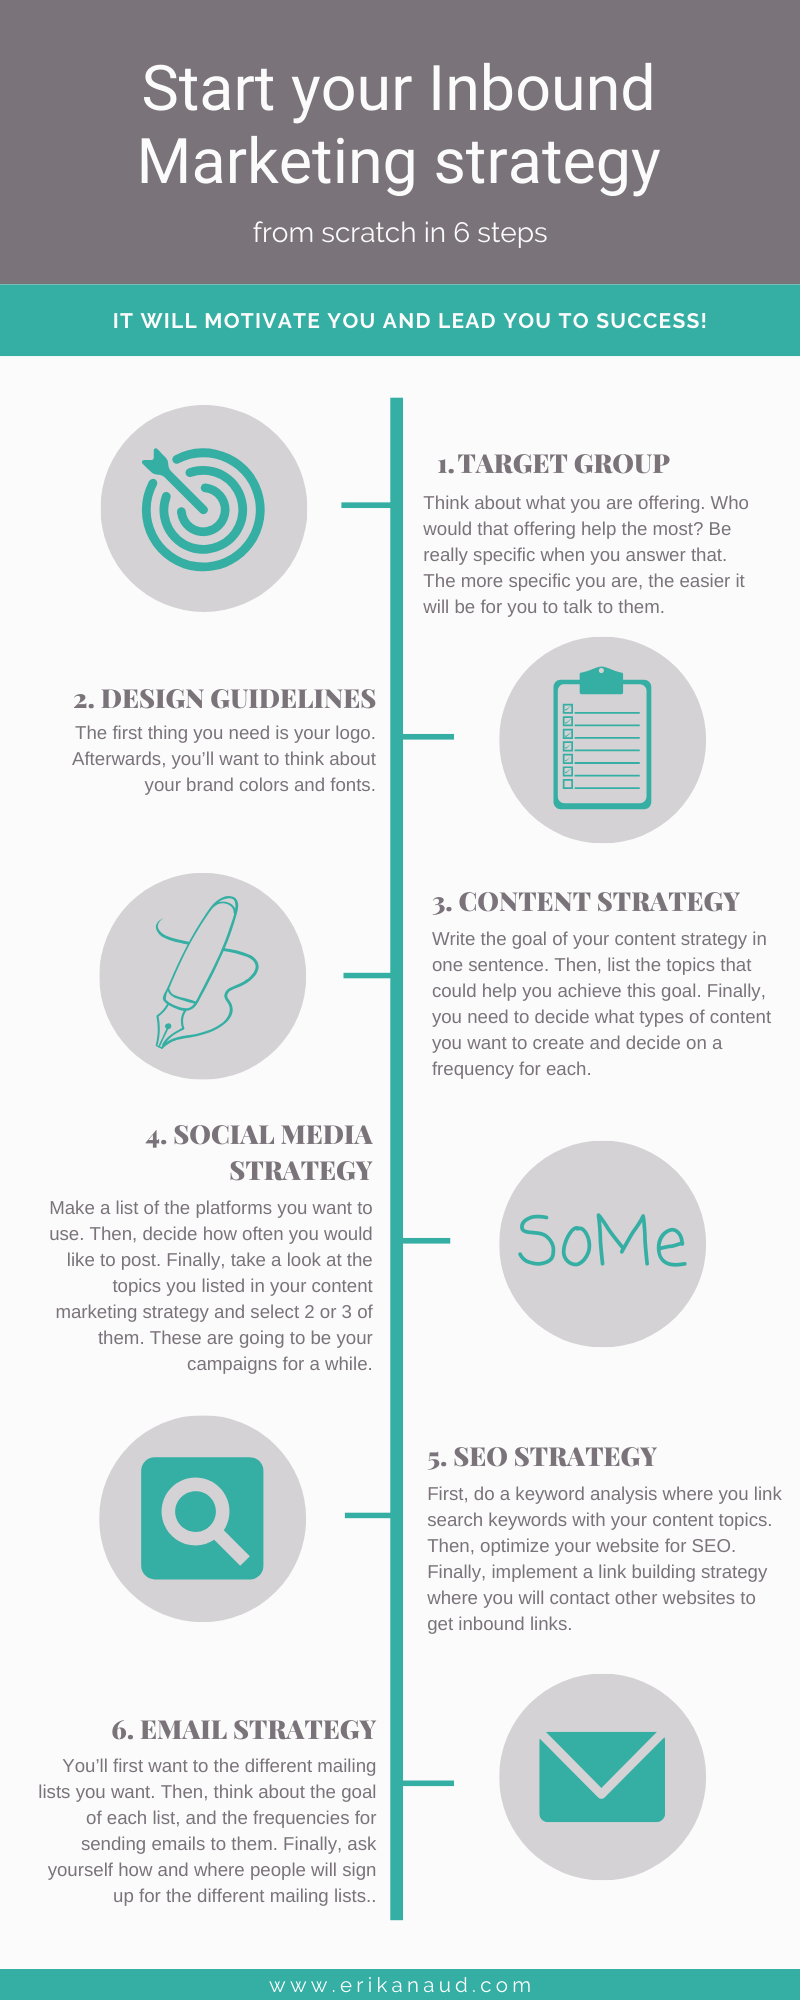 Start your Inbound Marketing strategy from scratch in 6 steps - infographic